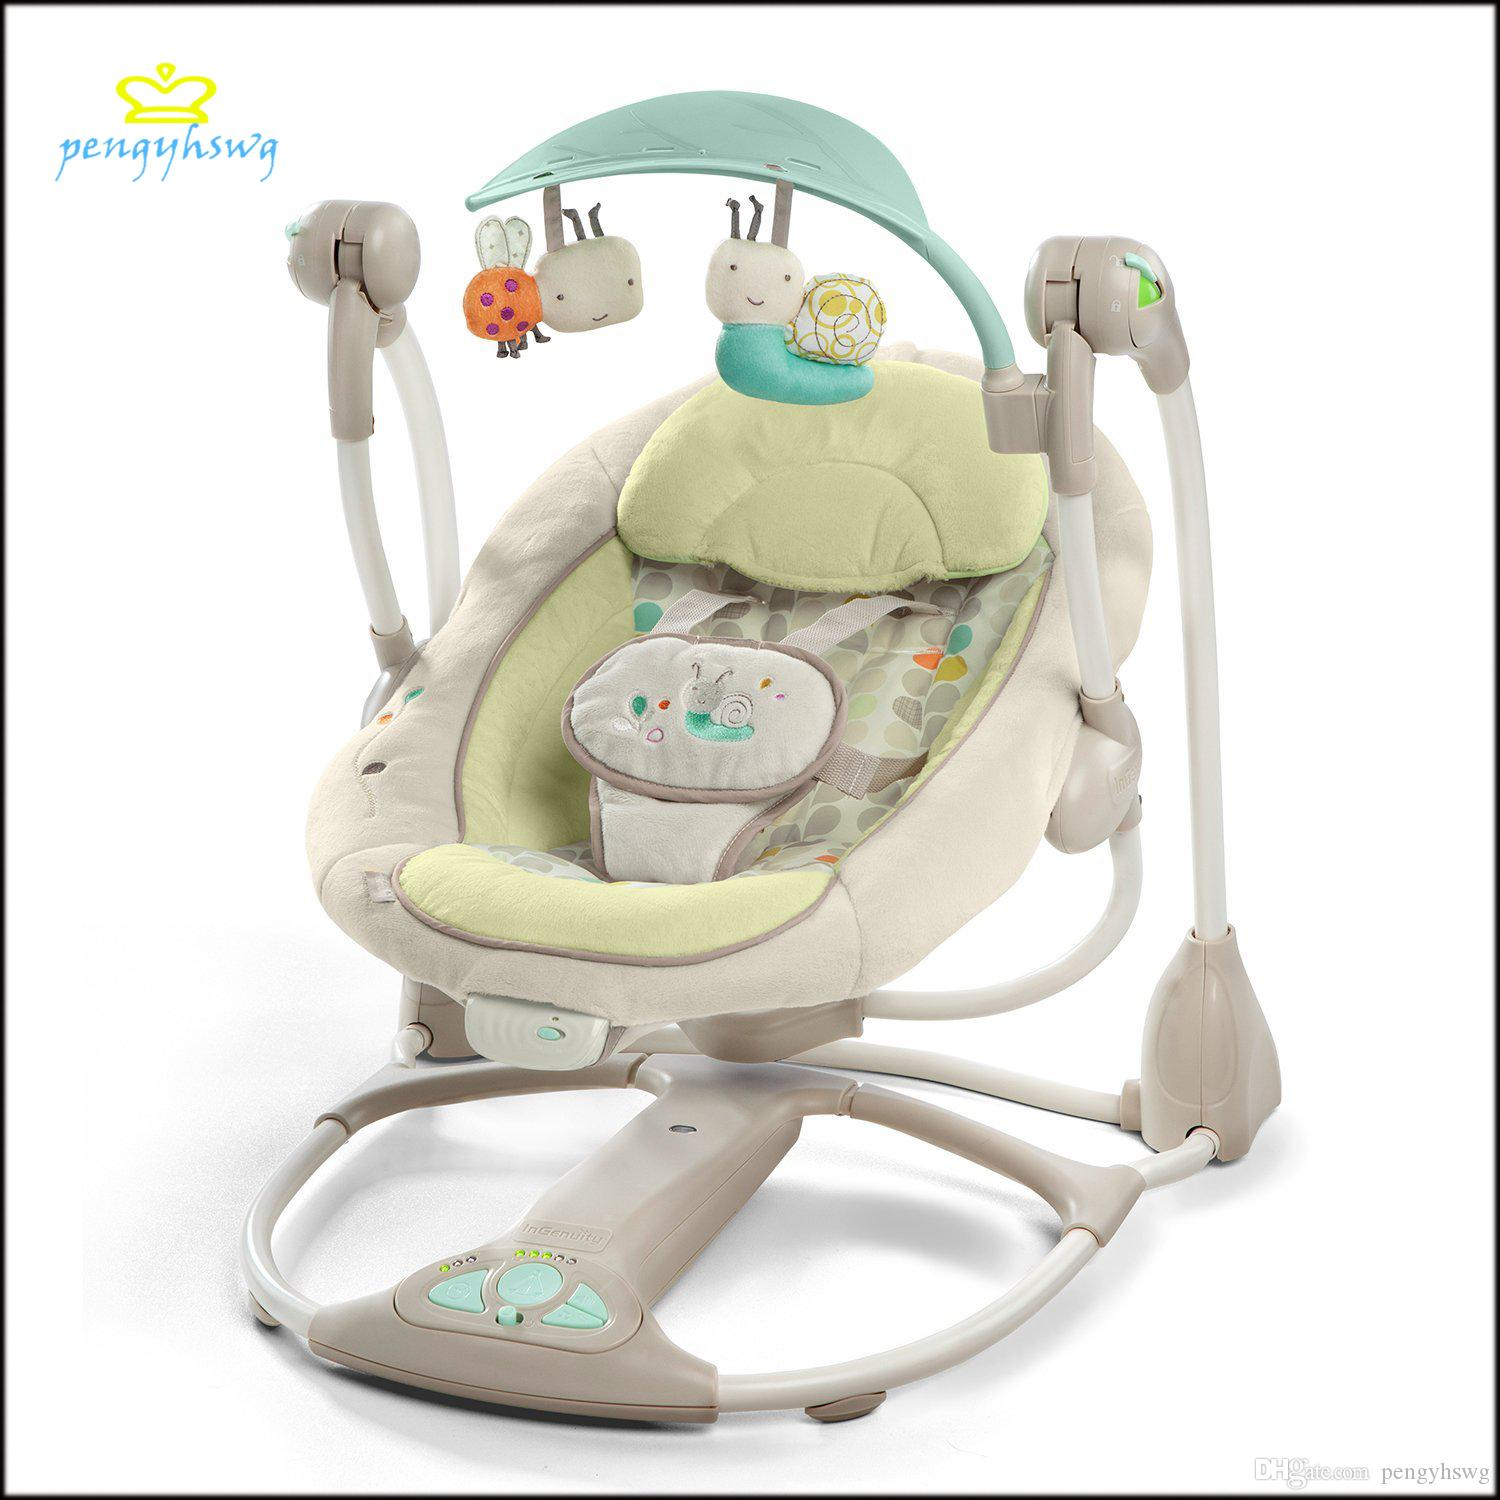 Electric baby rocker chair -  Spot Imported Baby Baby Music Electric Device Automatic Rocking Cradle To Sleep Safe And Comfortable Rest